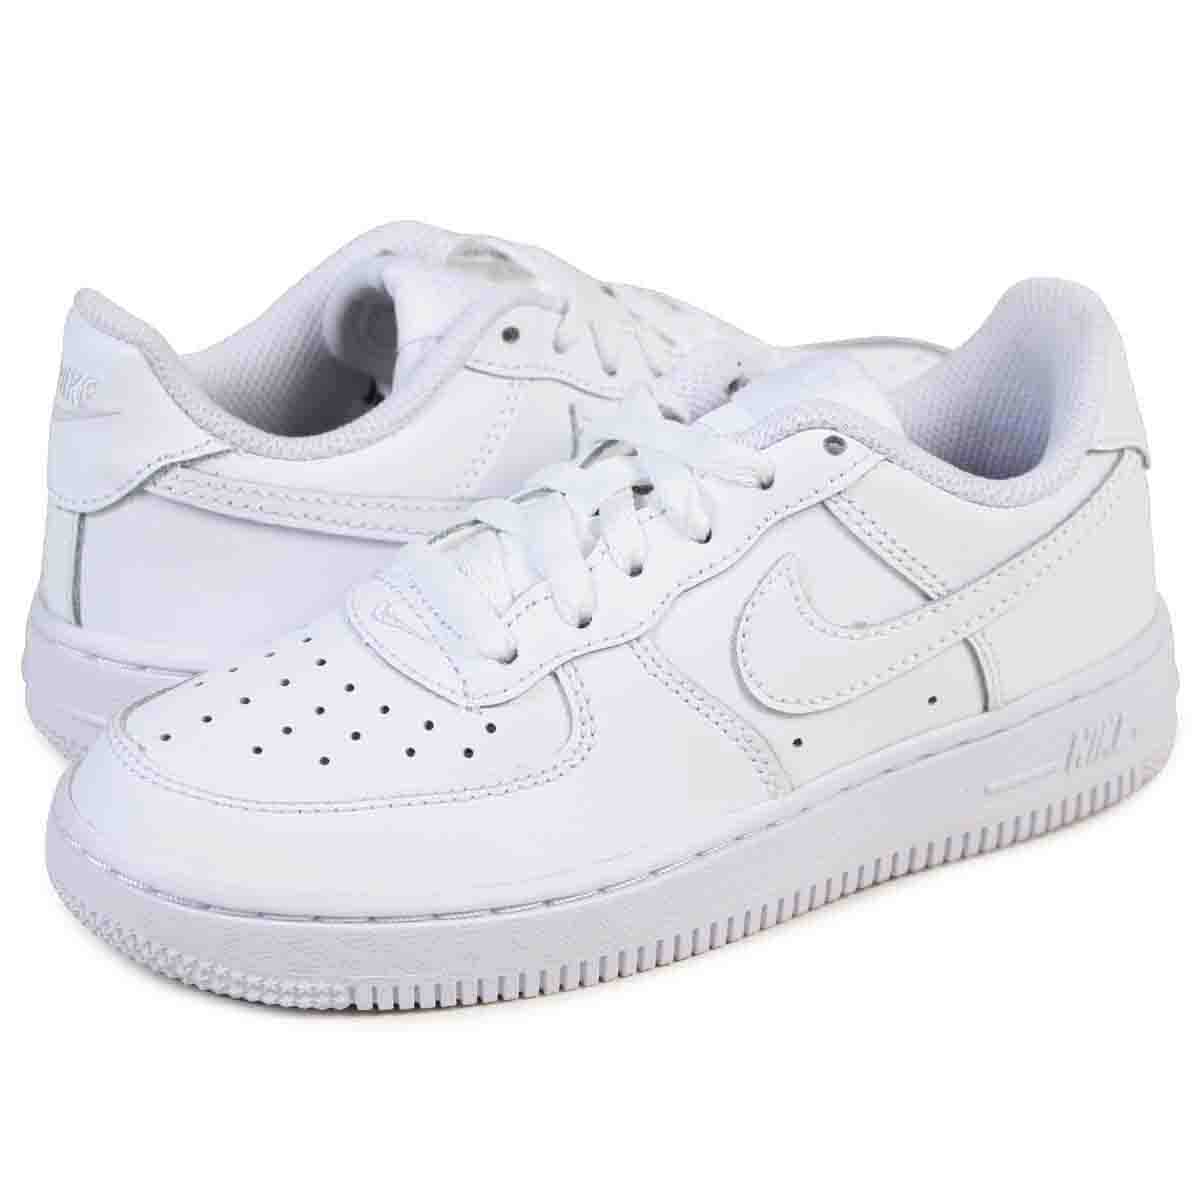 nike kids' air force 1 low basketball shoe nz